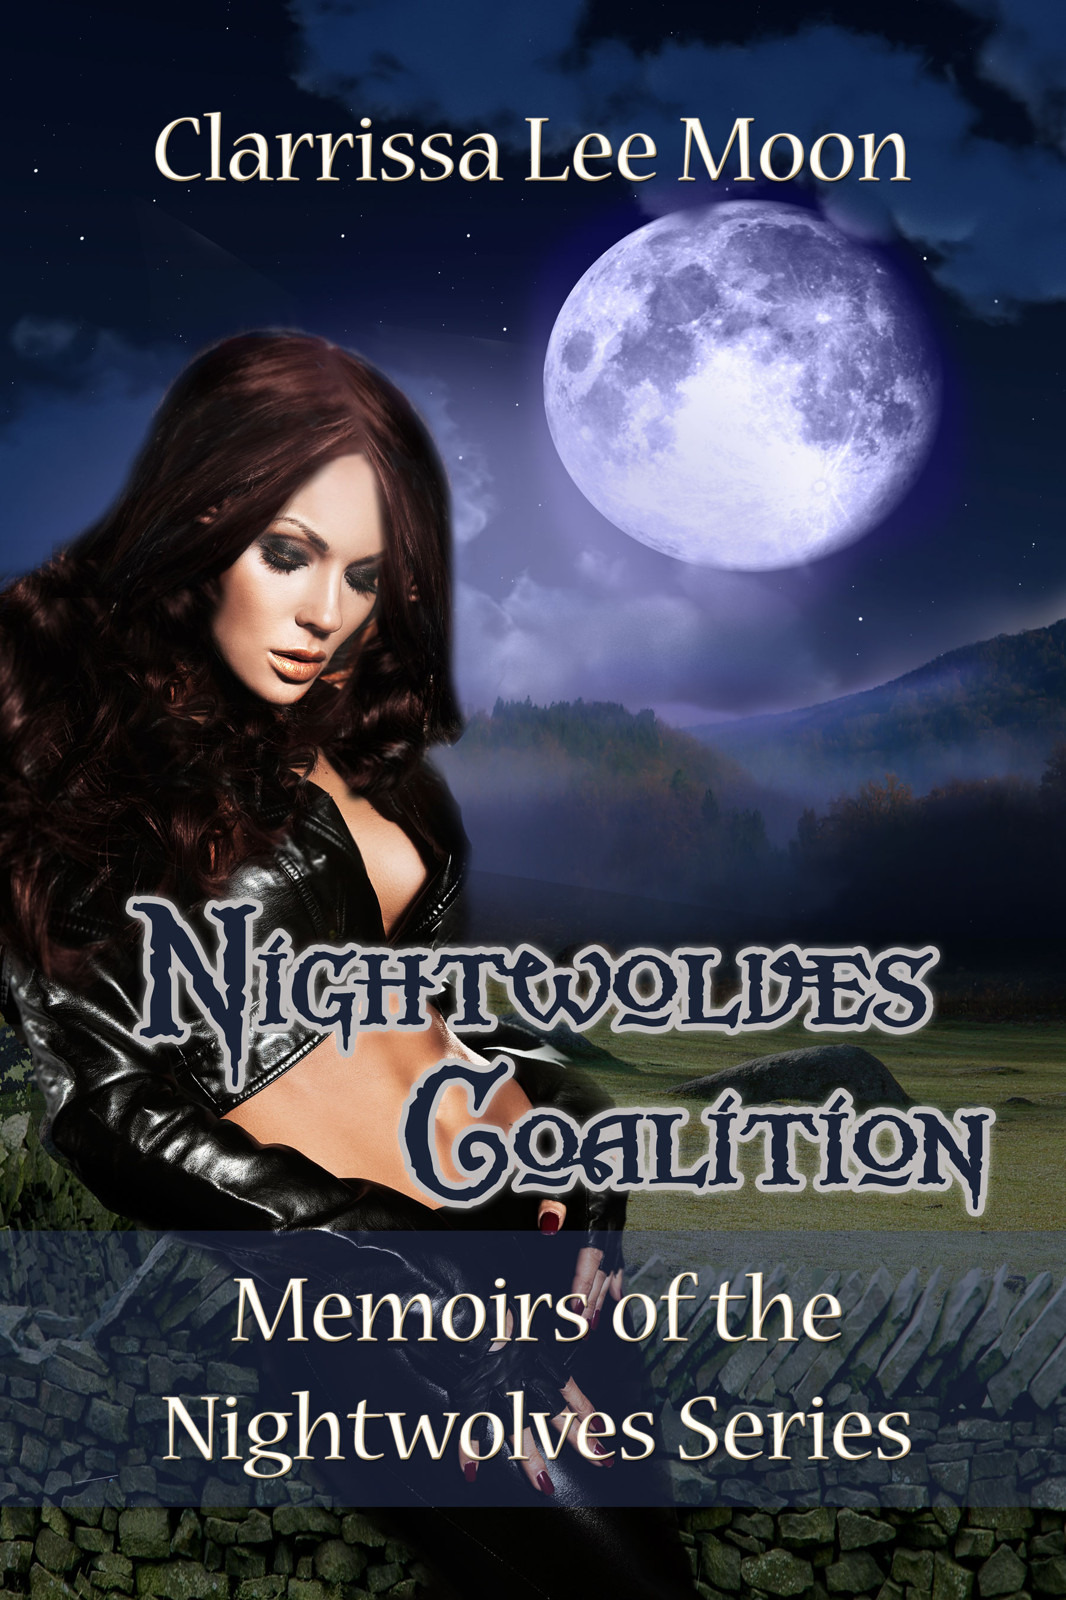 Nightwolves Coalition - Memoirs of the Nightwolves Series Book 1